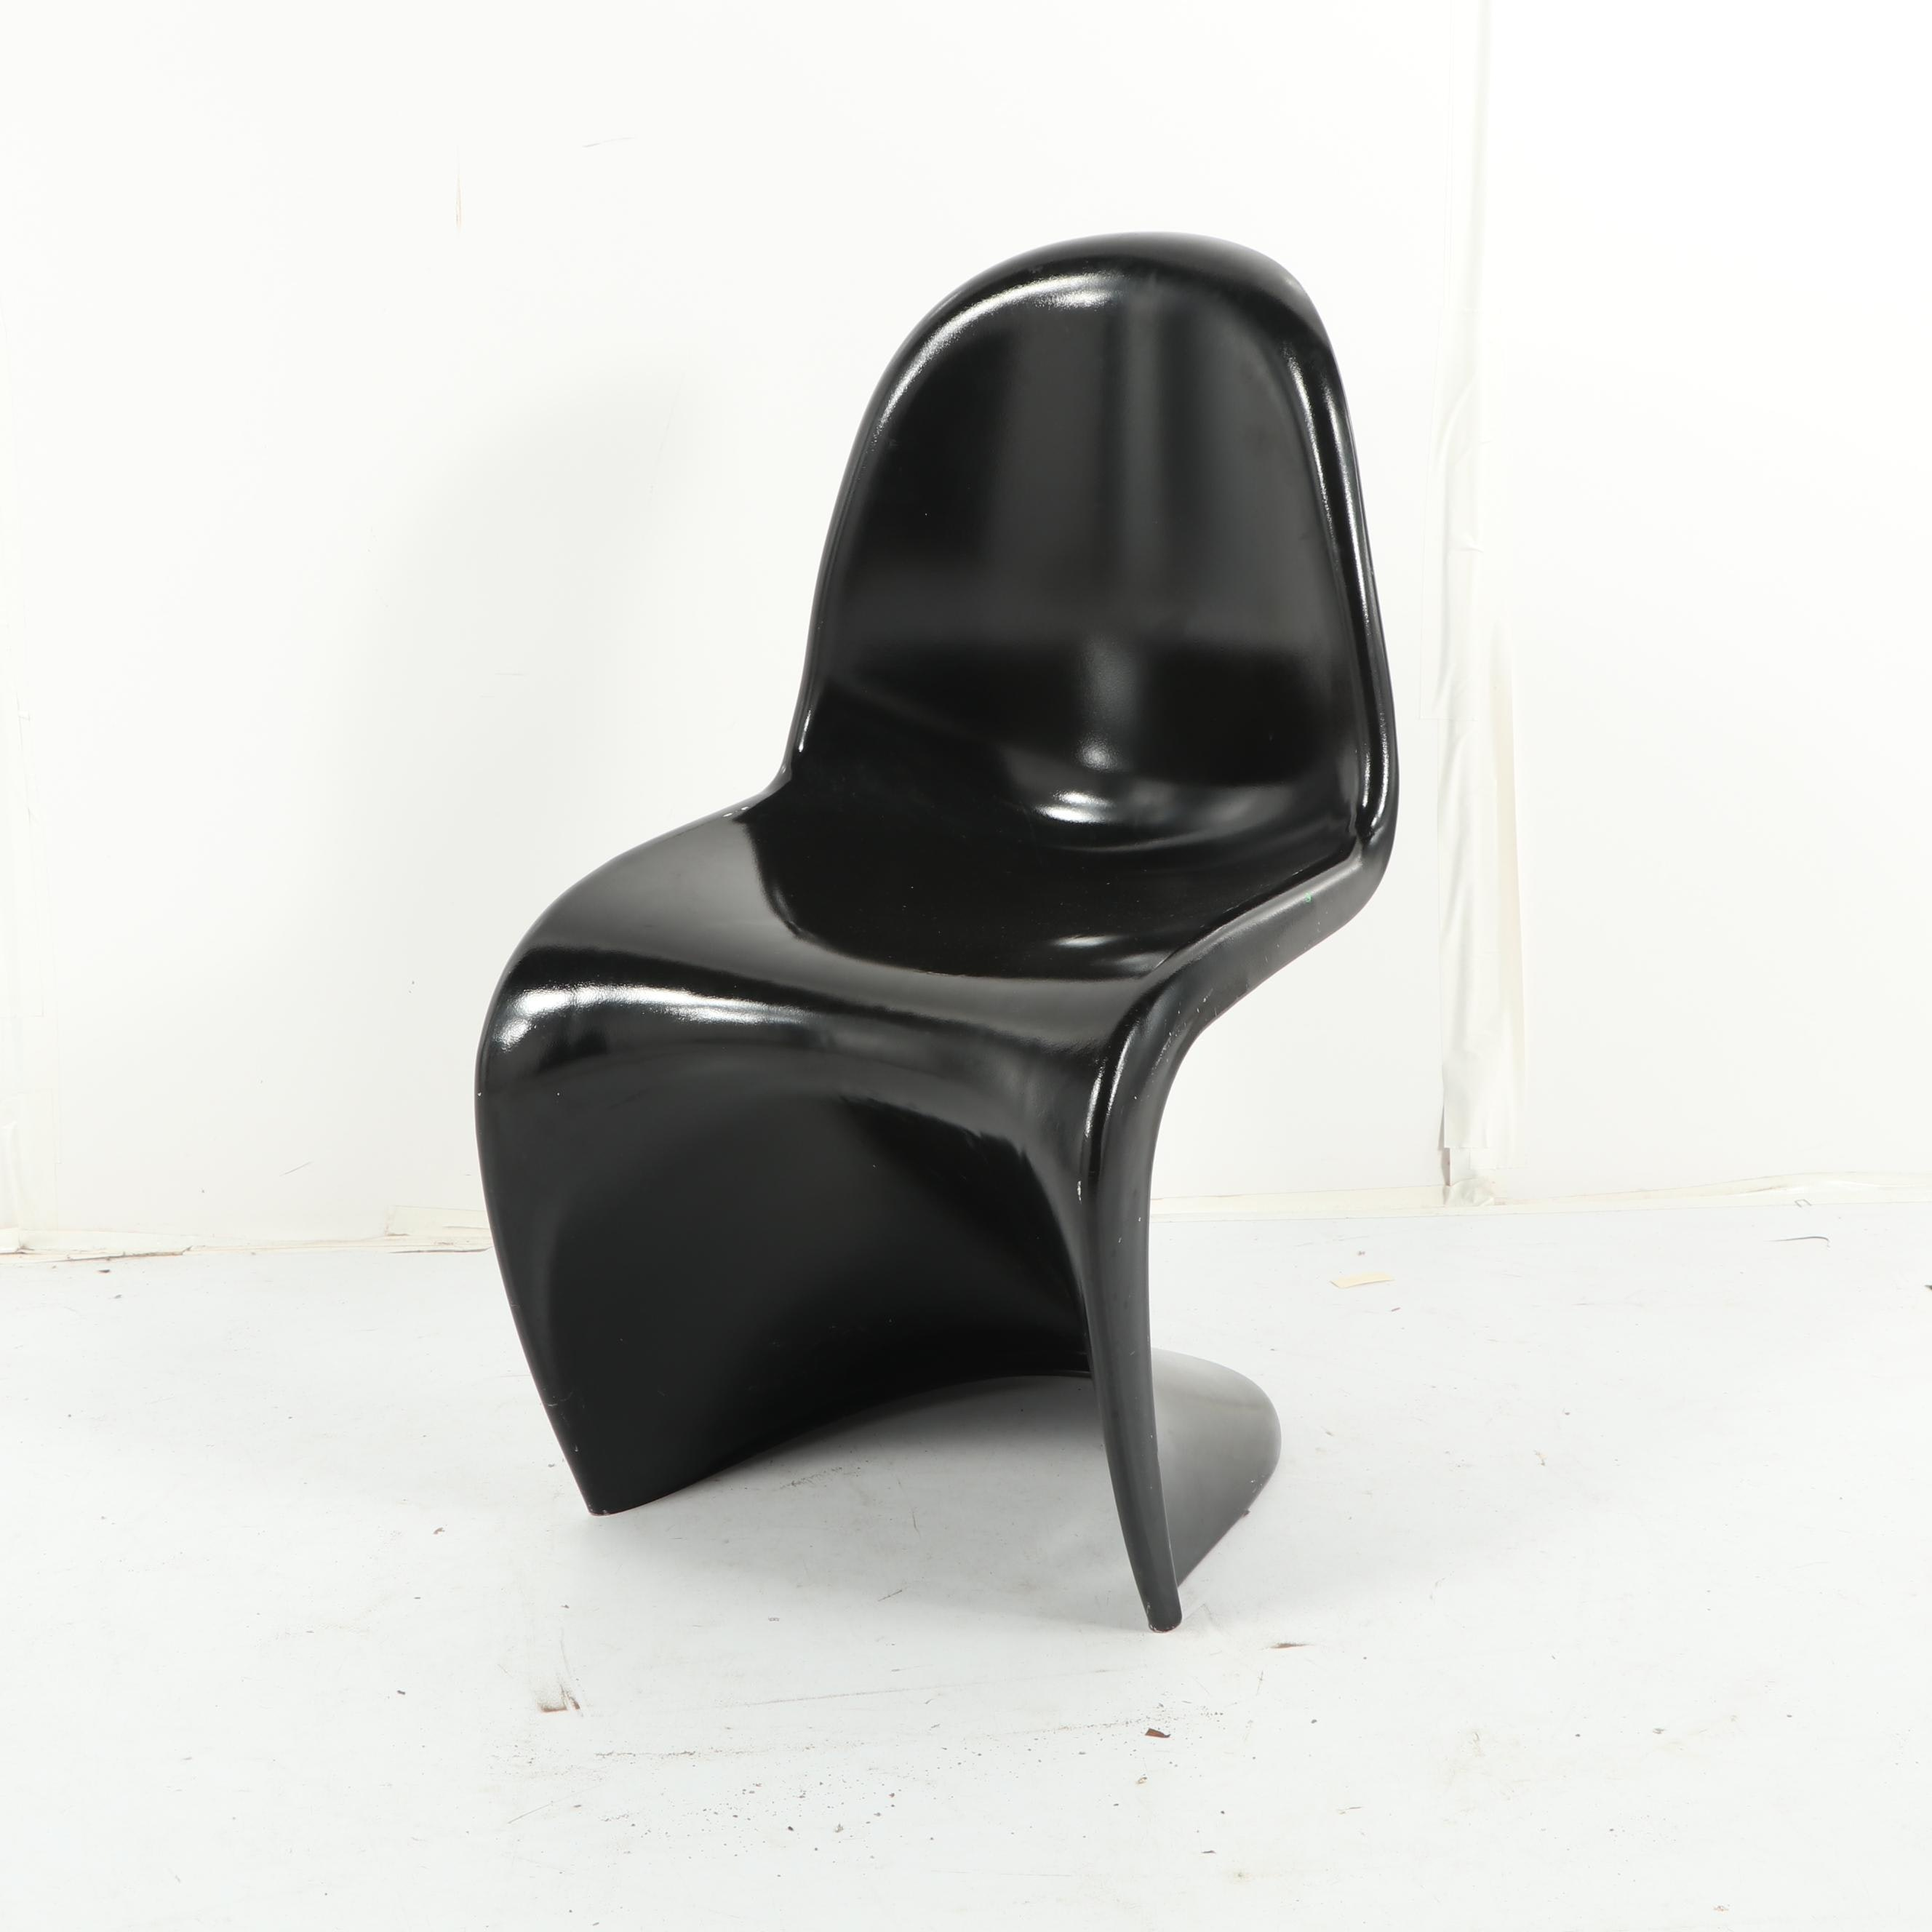 Modernist Style Molded Plastic Chair after Panton, 20th Century